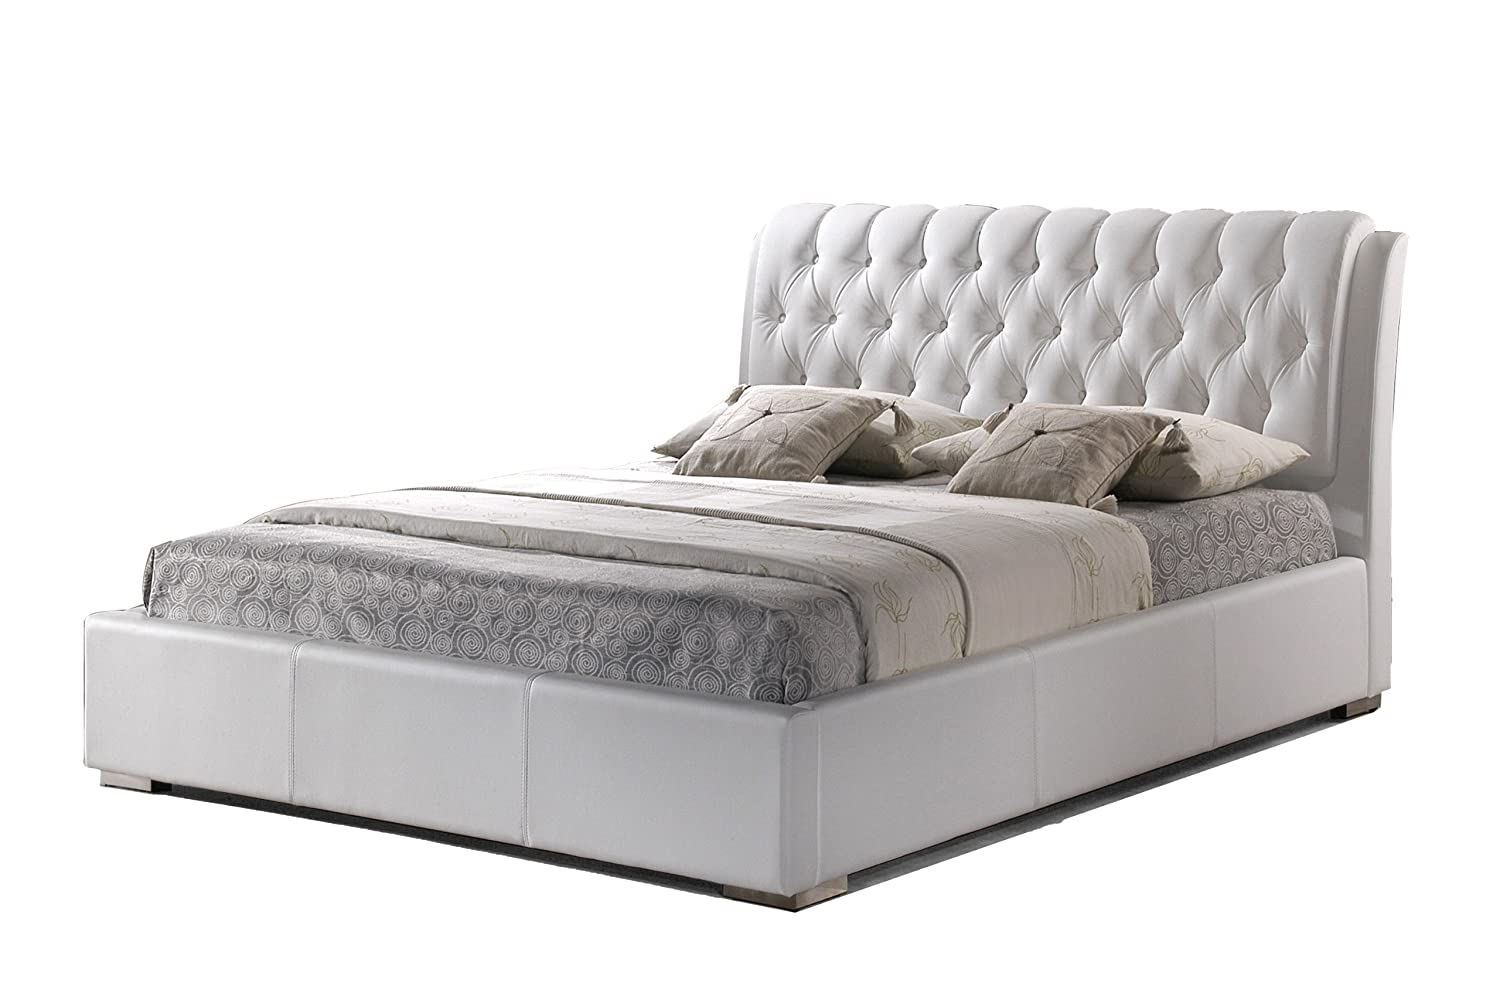 cheap bed frames queen bed - Queen Bed Frames Cheap